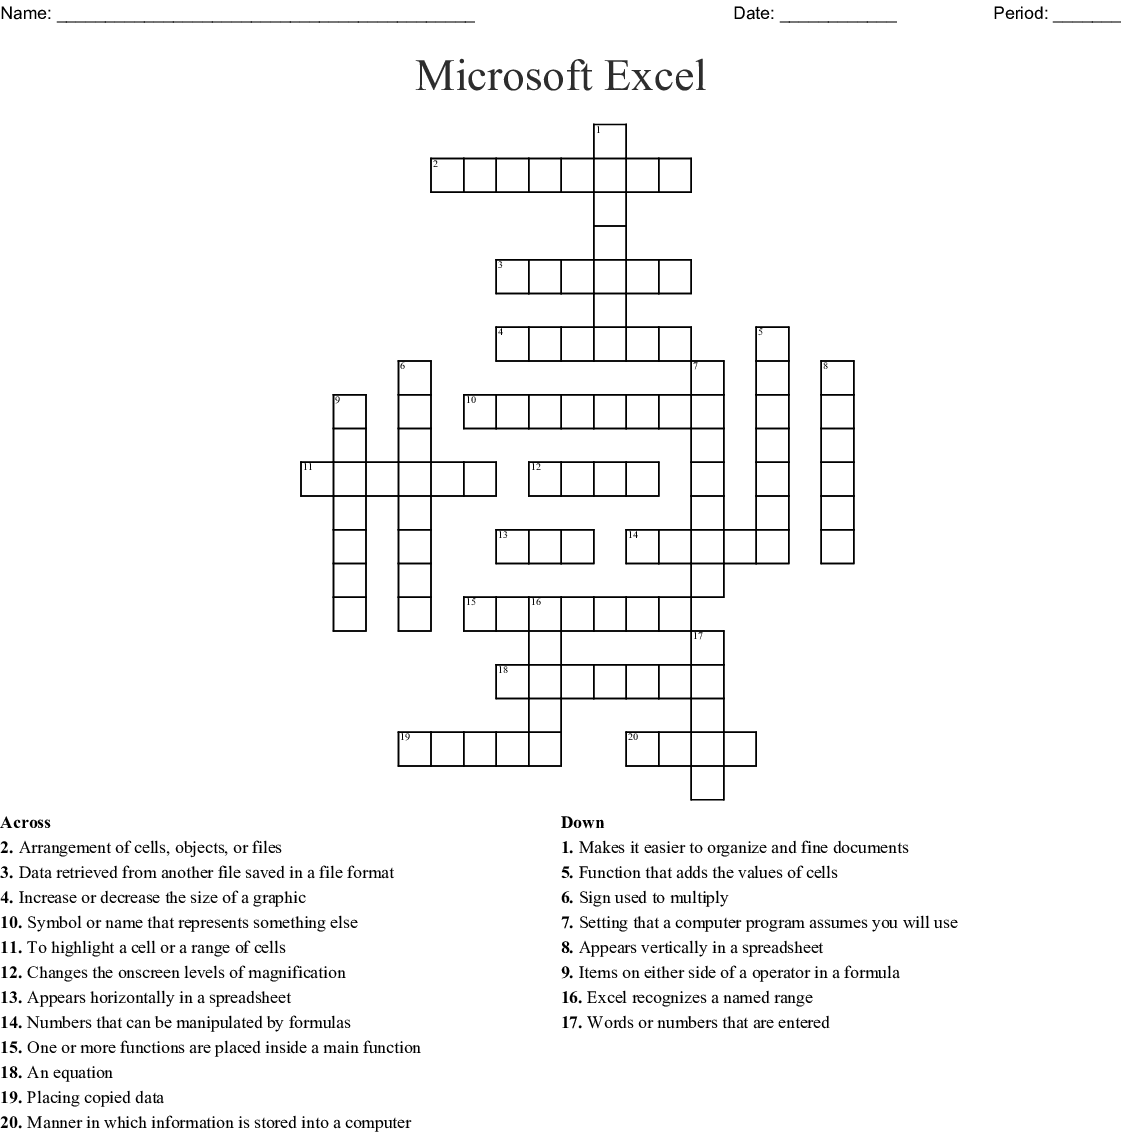 Microsoft Excel Crossword Wordmint